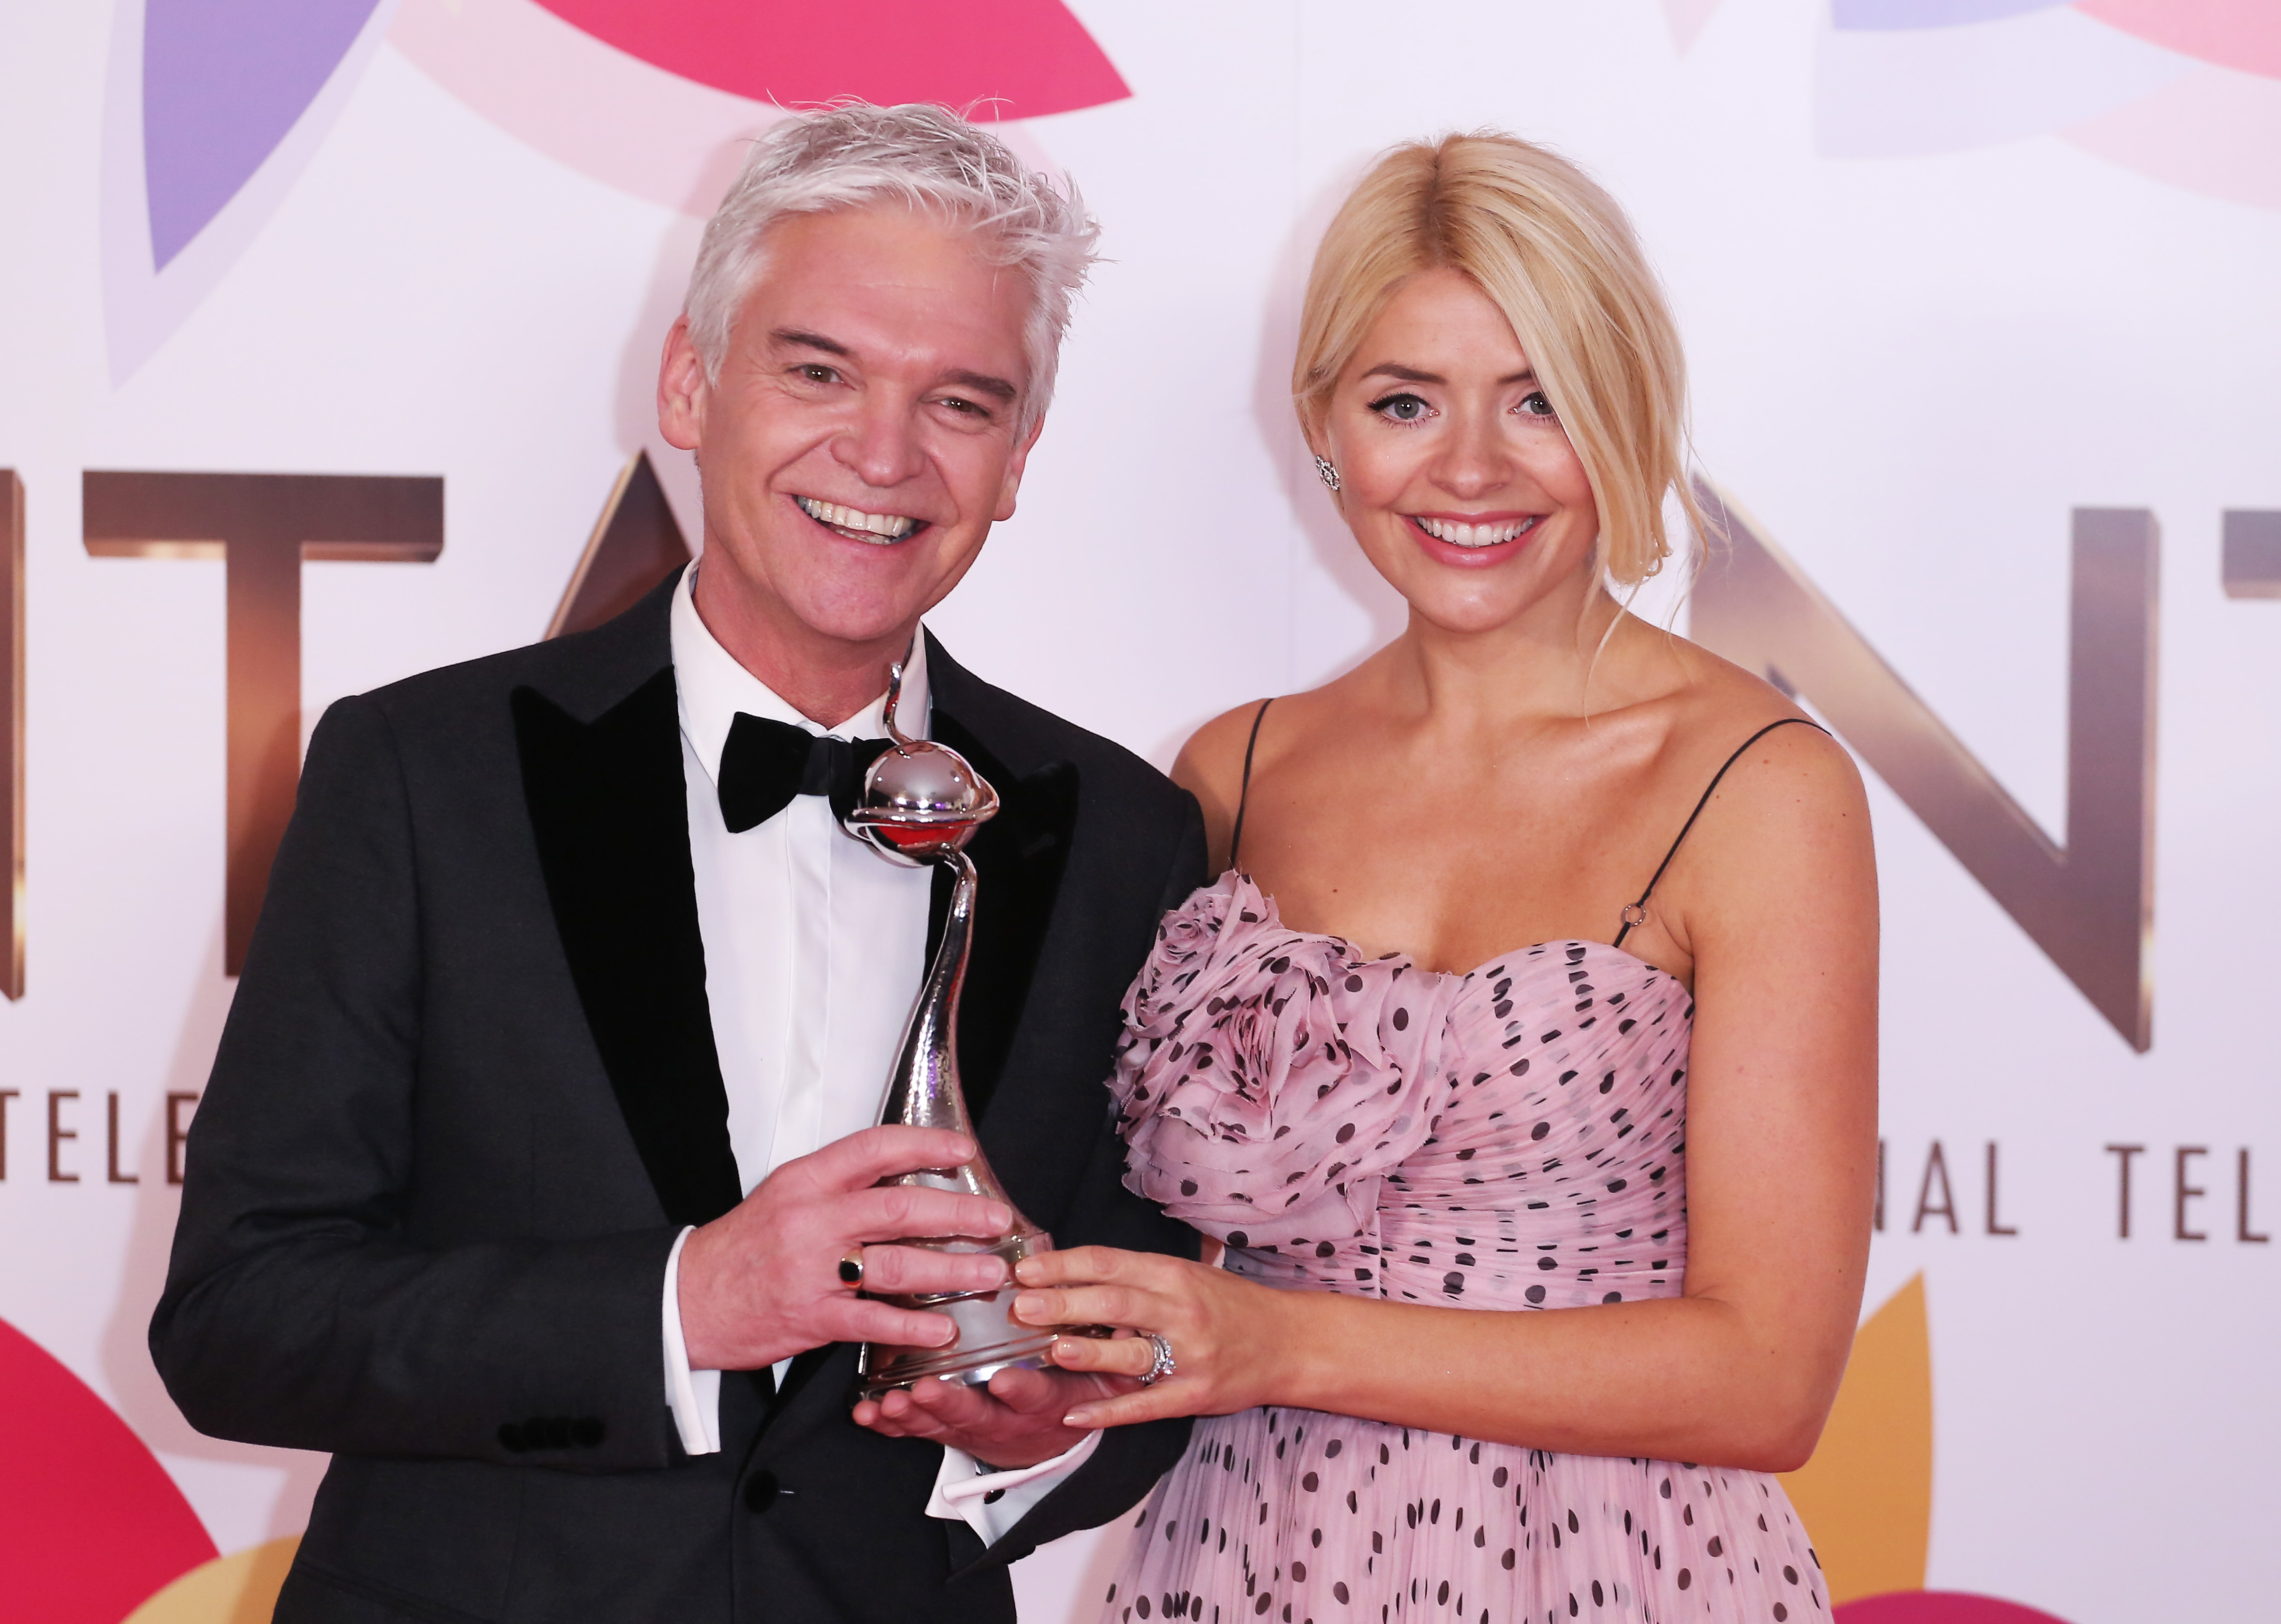 Holly Willoughby warns This Morning viewers she might still be a bit tipsy